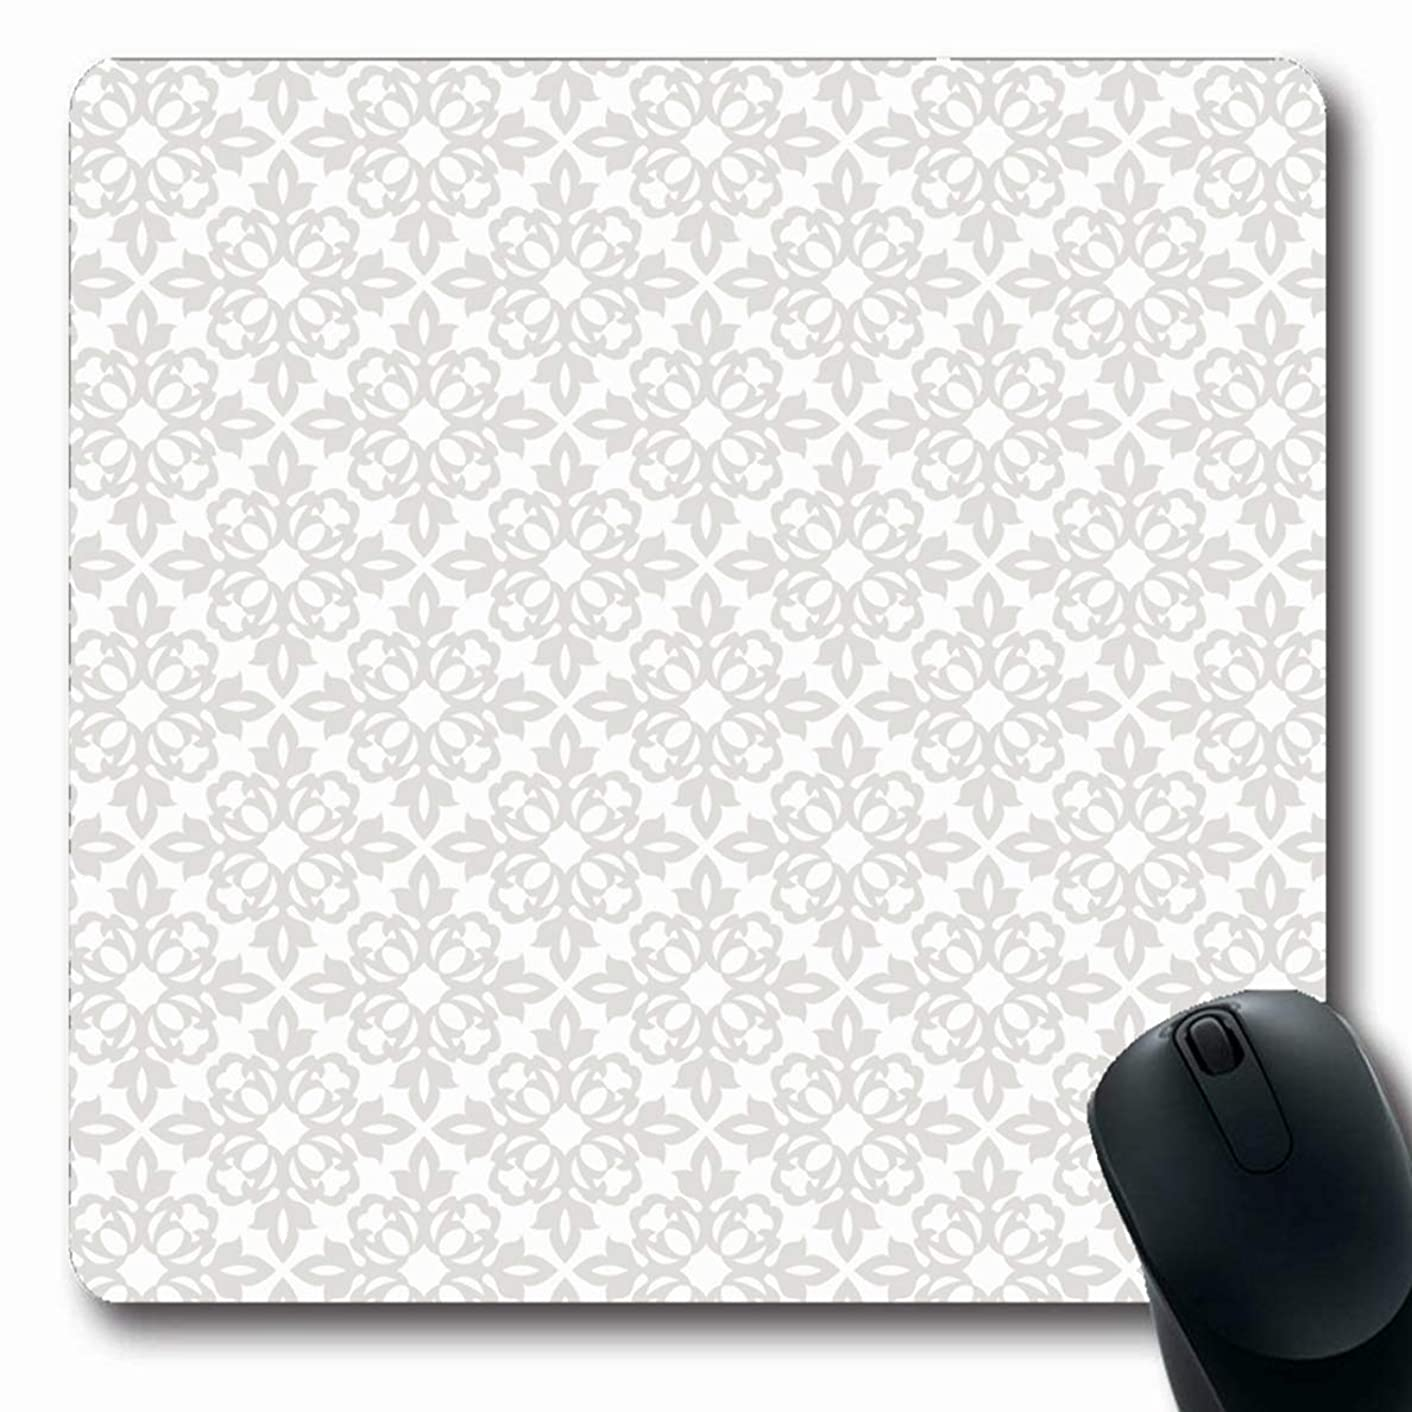 Ahawoso Mousepads Wall Floral Pattern Gray Abstract Wedding Flower Modern Victorian Simple Classic Design Oblong Shape 7.9 x 9.5 Inches Non-Slip Gaming Mouse Pad Rubber Oblong Mat